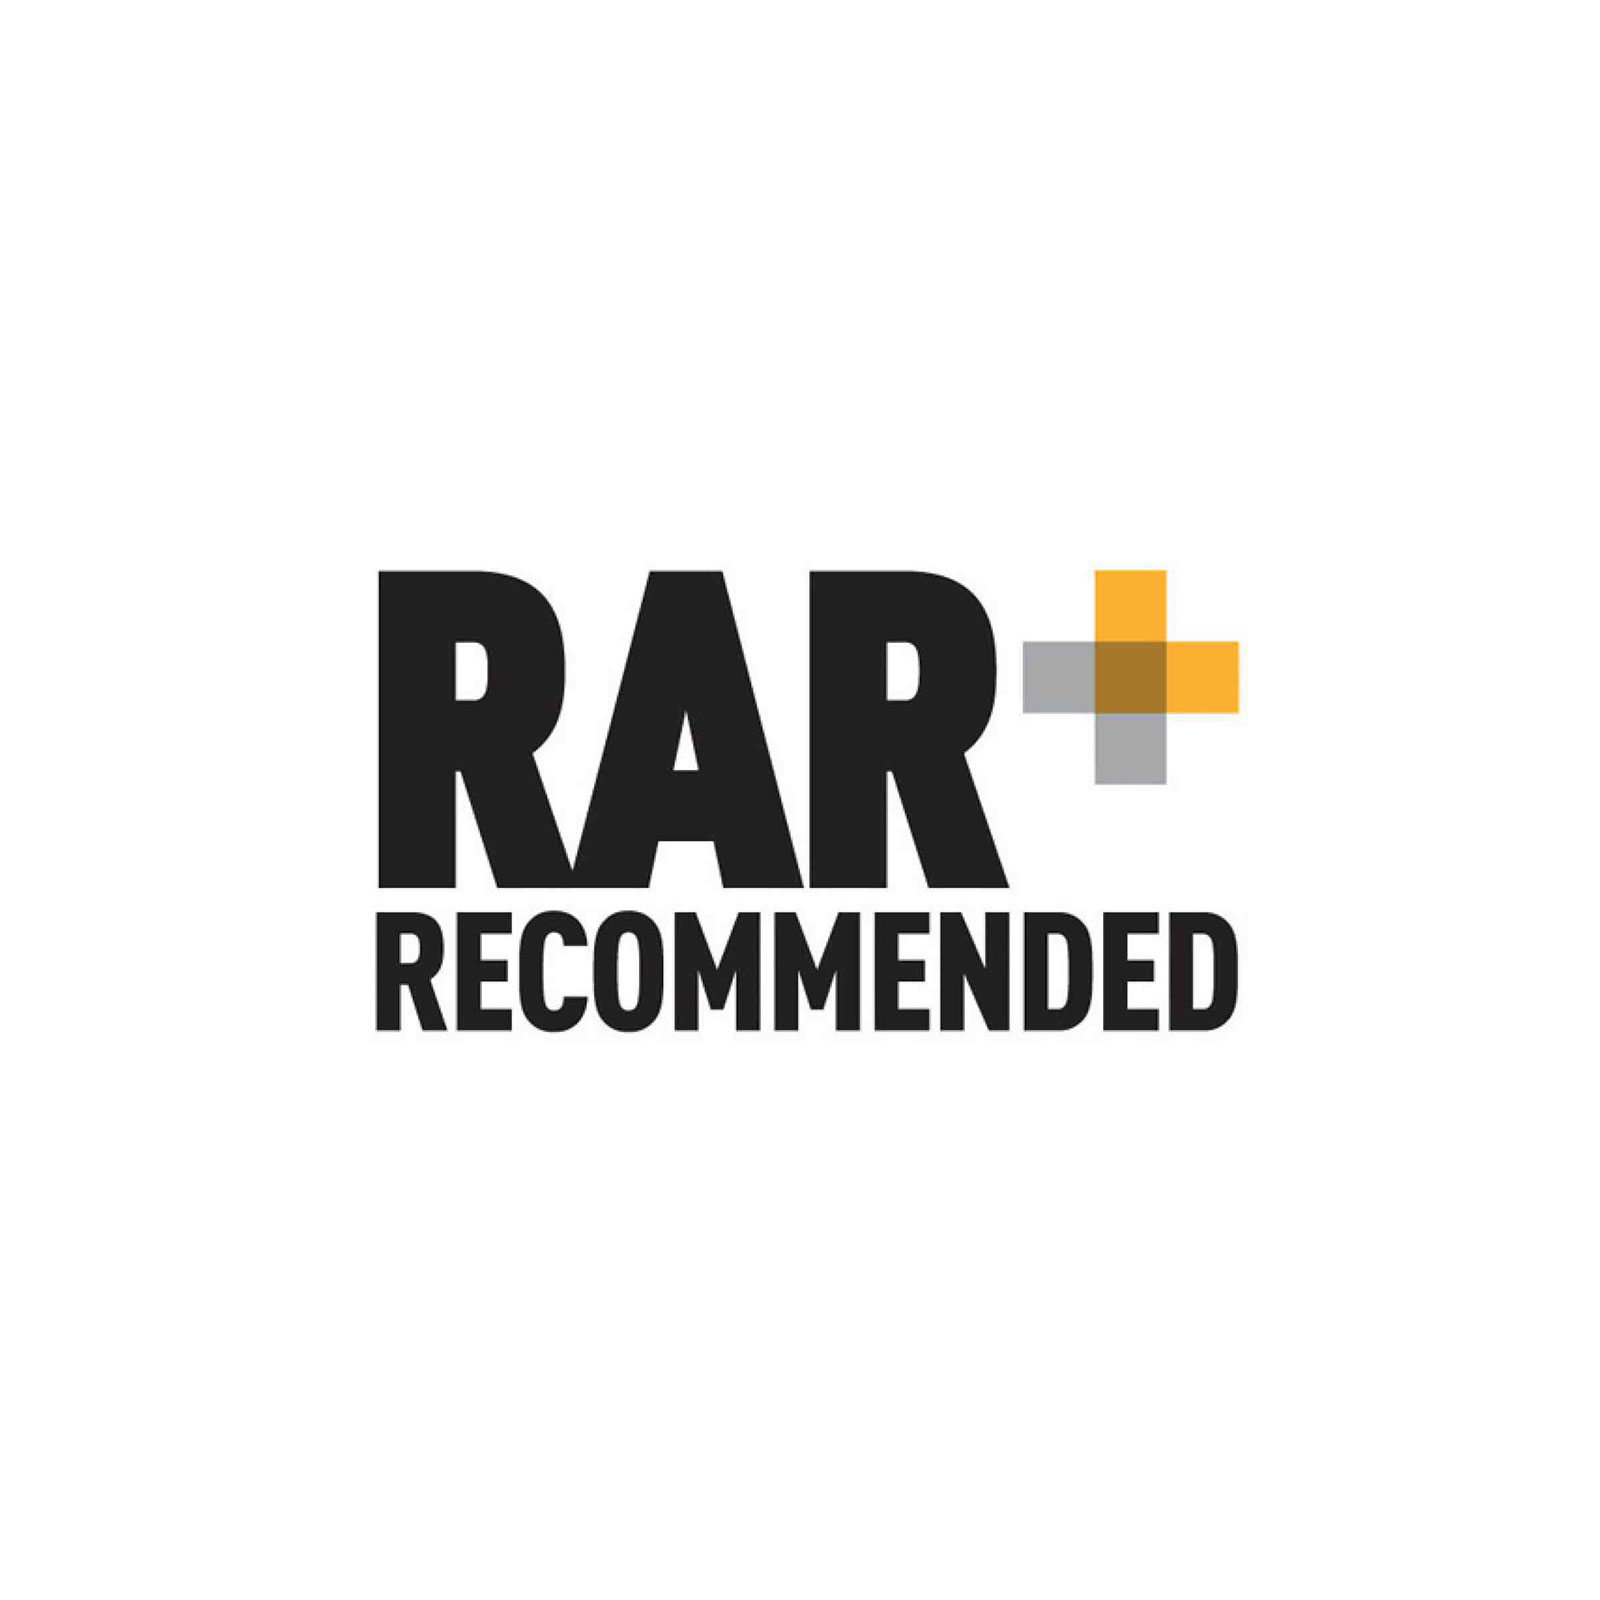 Hur-RAR! Digital Visitor Is Now A Recommended Agency